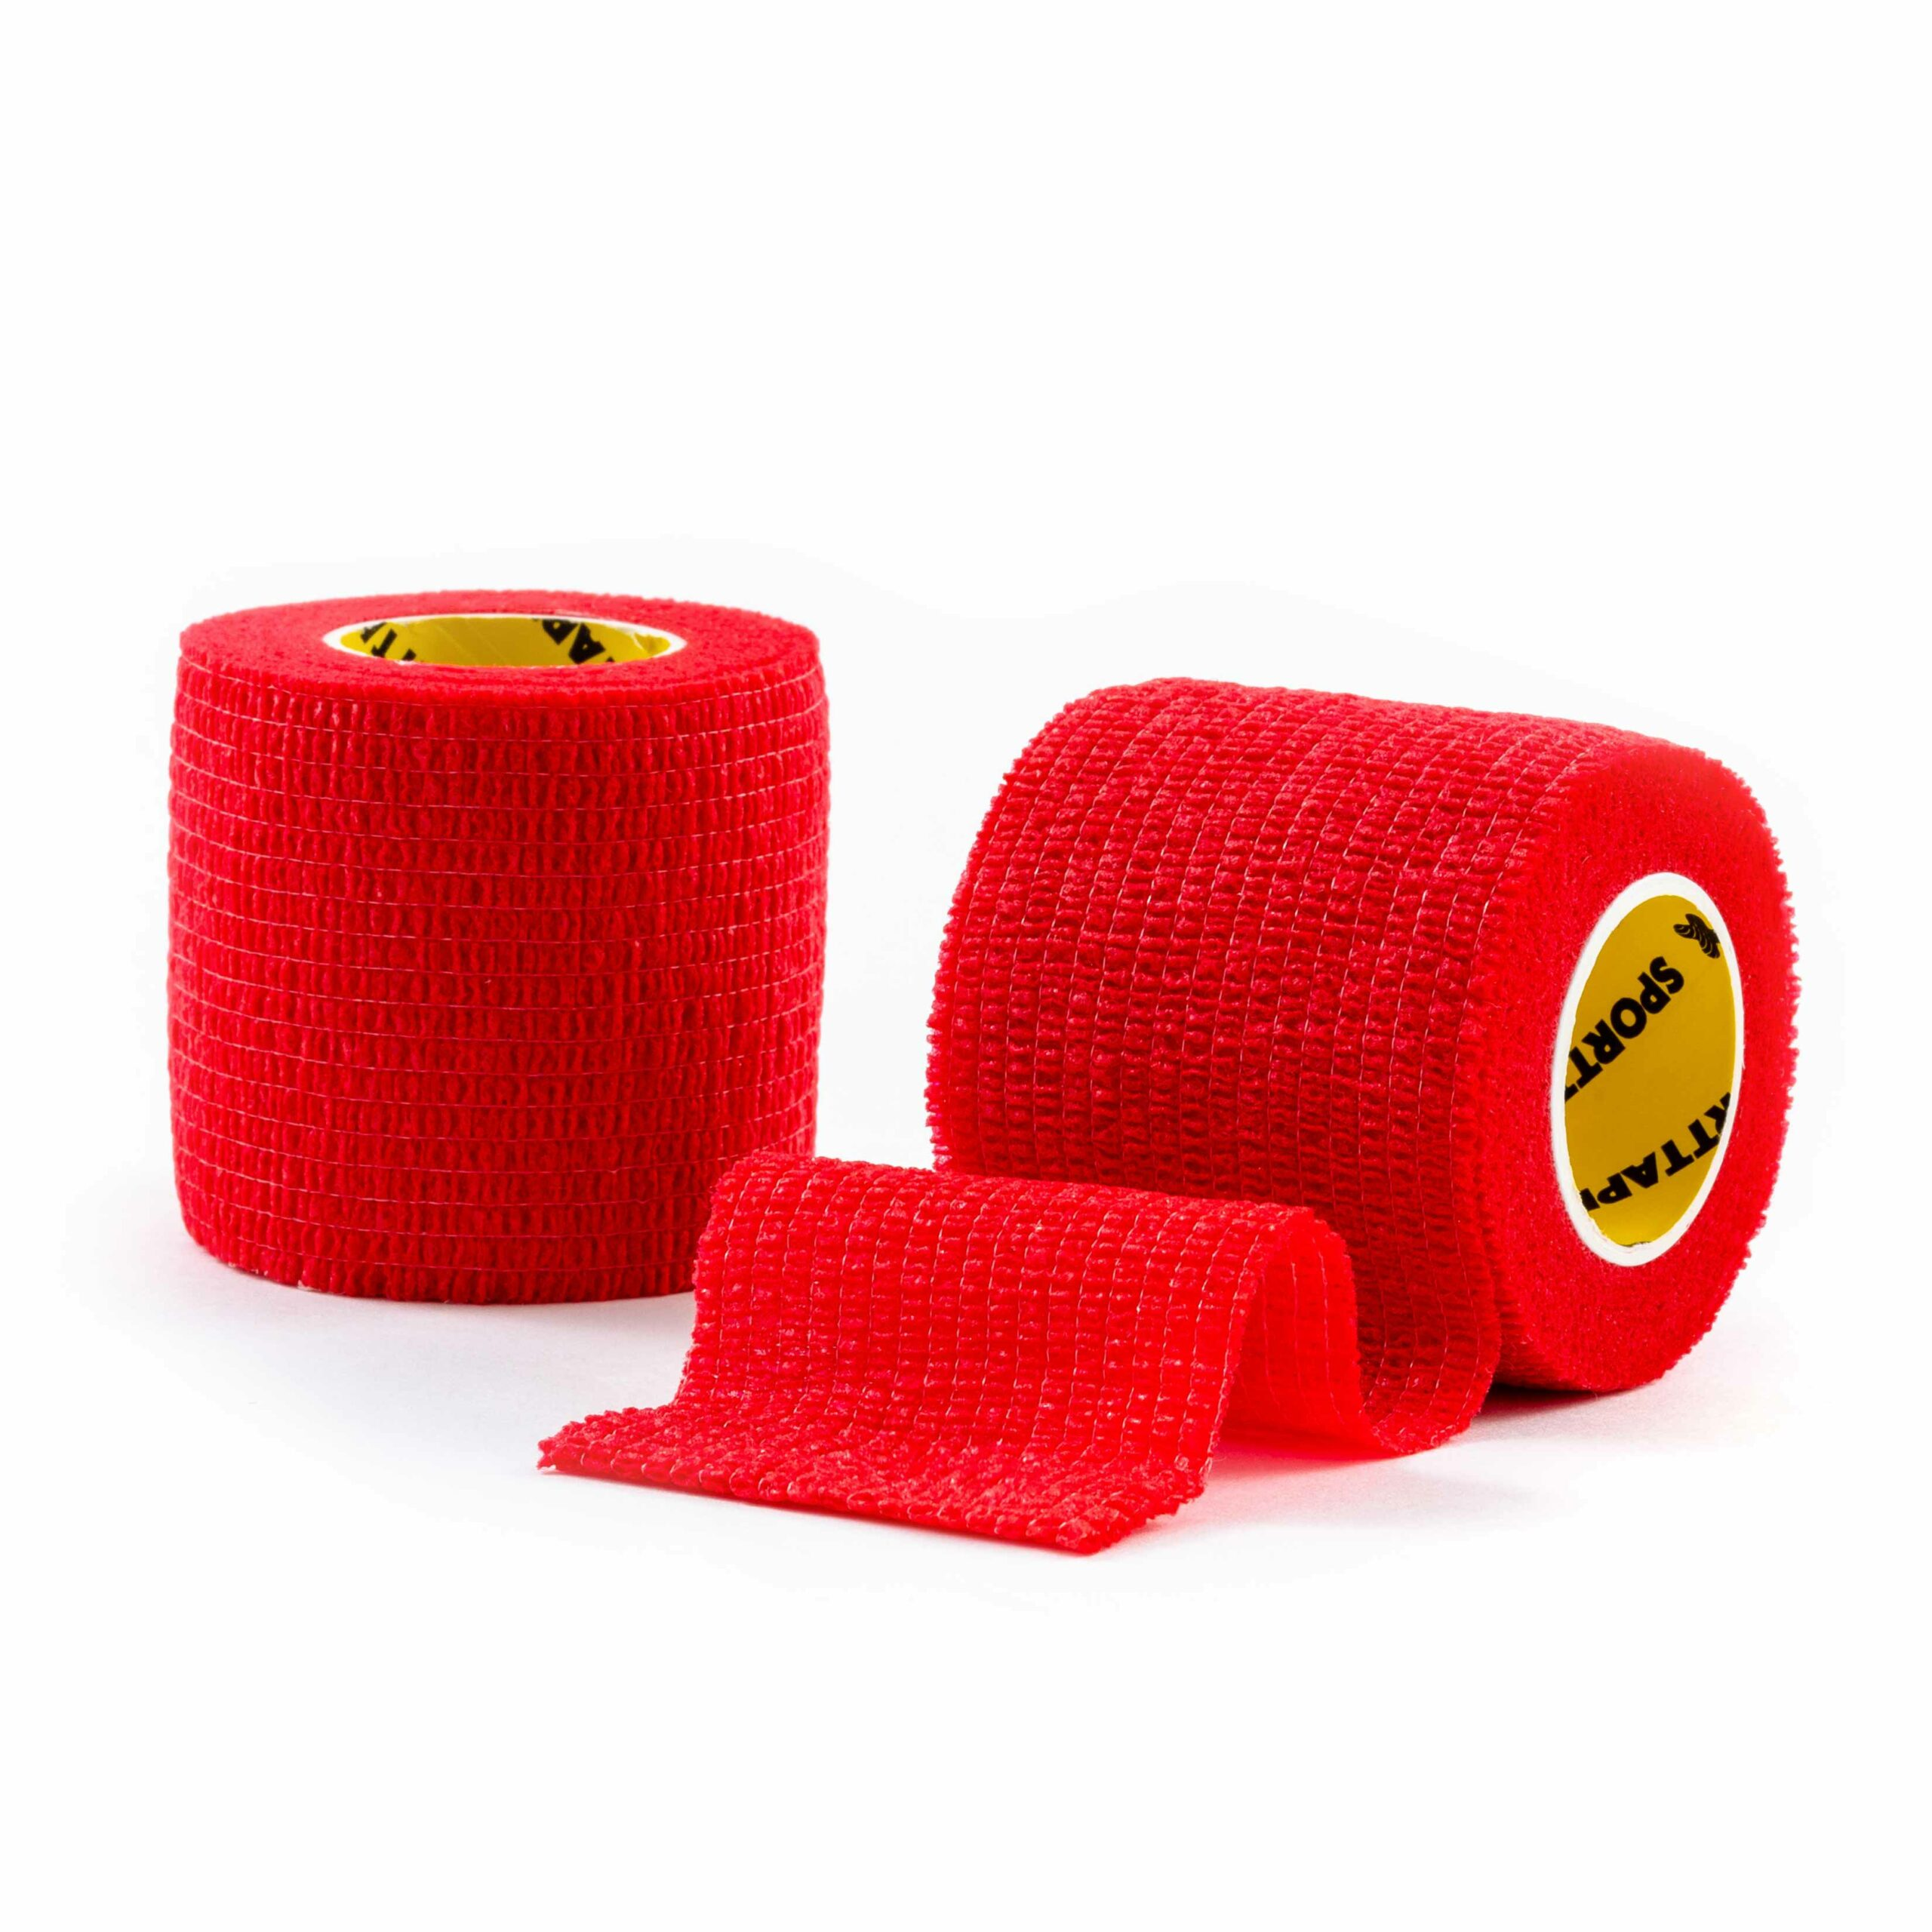 Cohesive Tape Red 5cm 2 Rolls